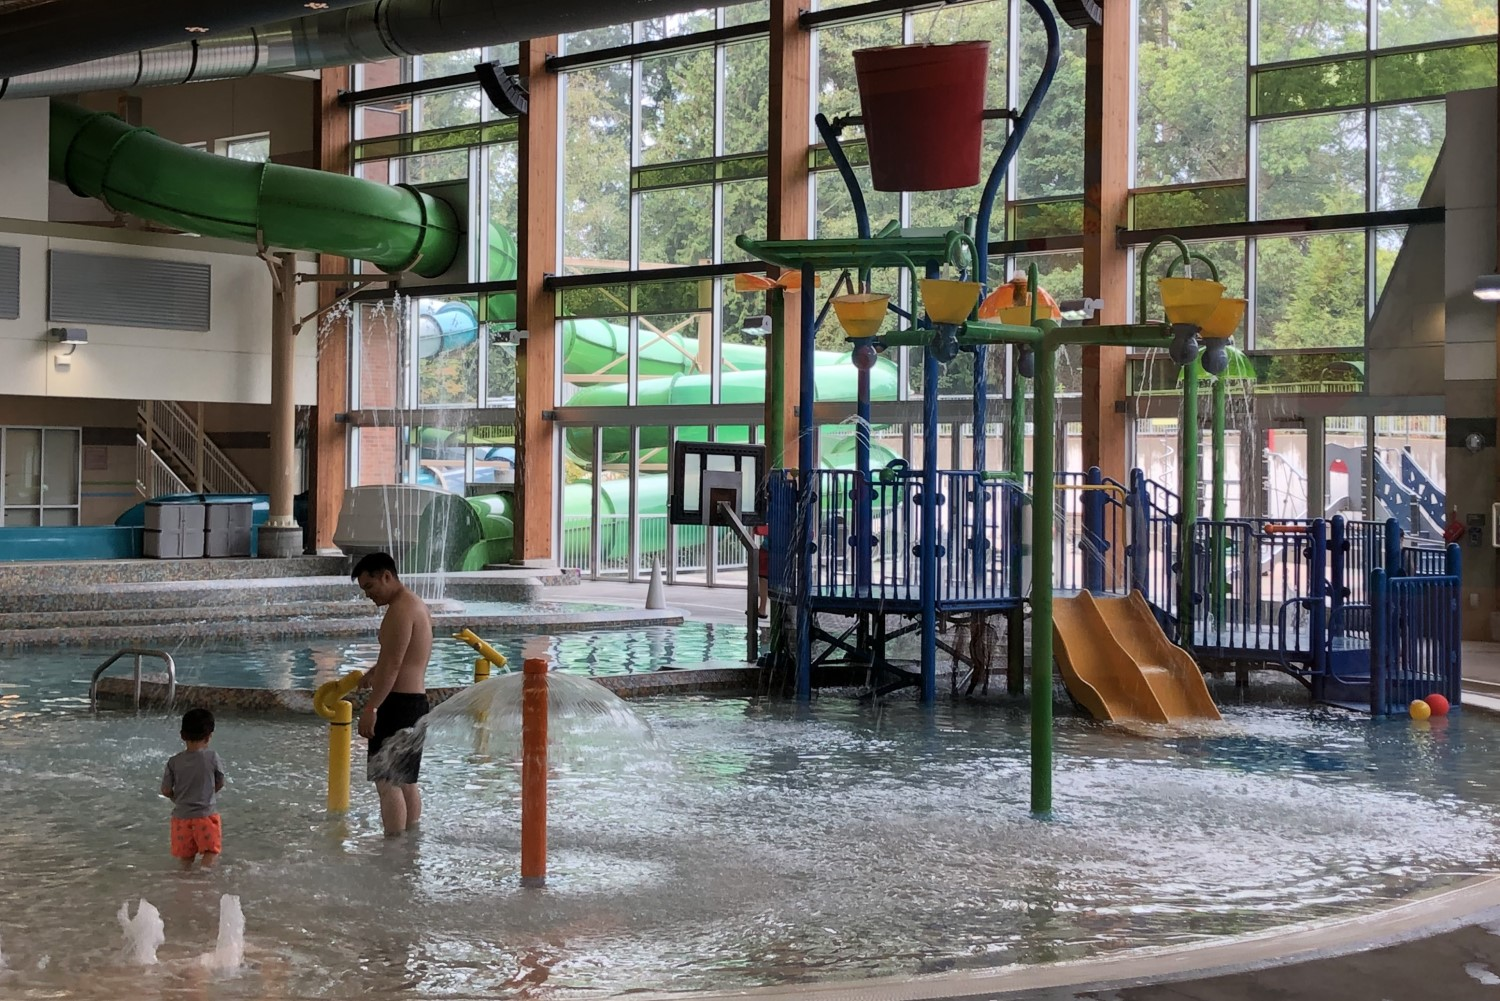 Located within the Lynnwood Recreation Center, this pool/water park playground is a favorite of local families. (Image: Jeff Totey / Seattle Refined)